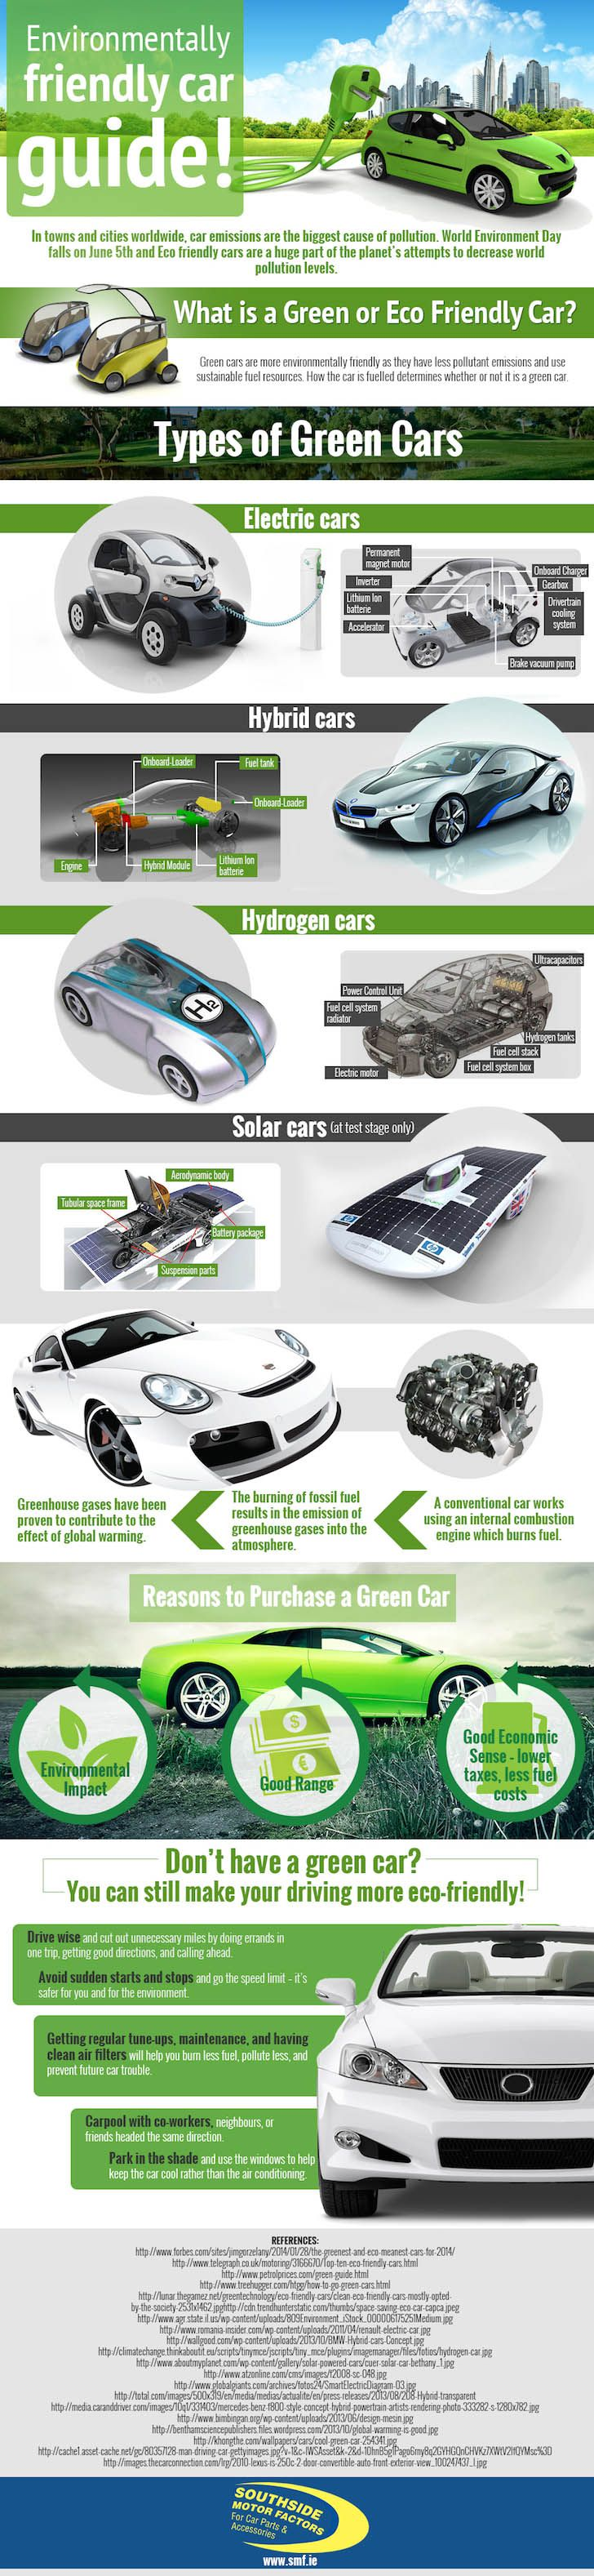 The 25 best eco friendly cars ideas on pinterest toys for christmas eco friendly toys and toy car storage